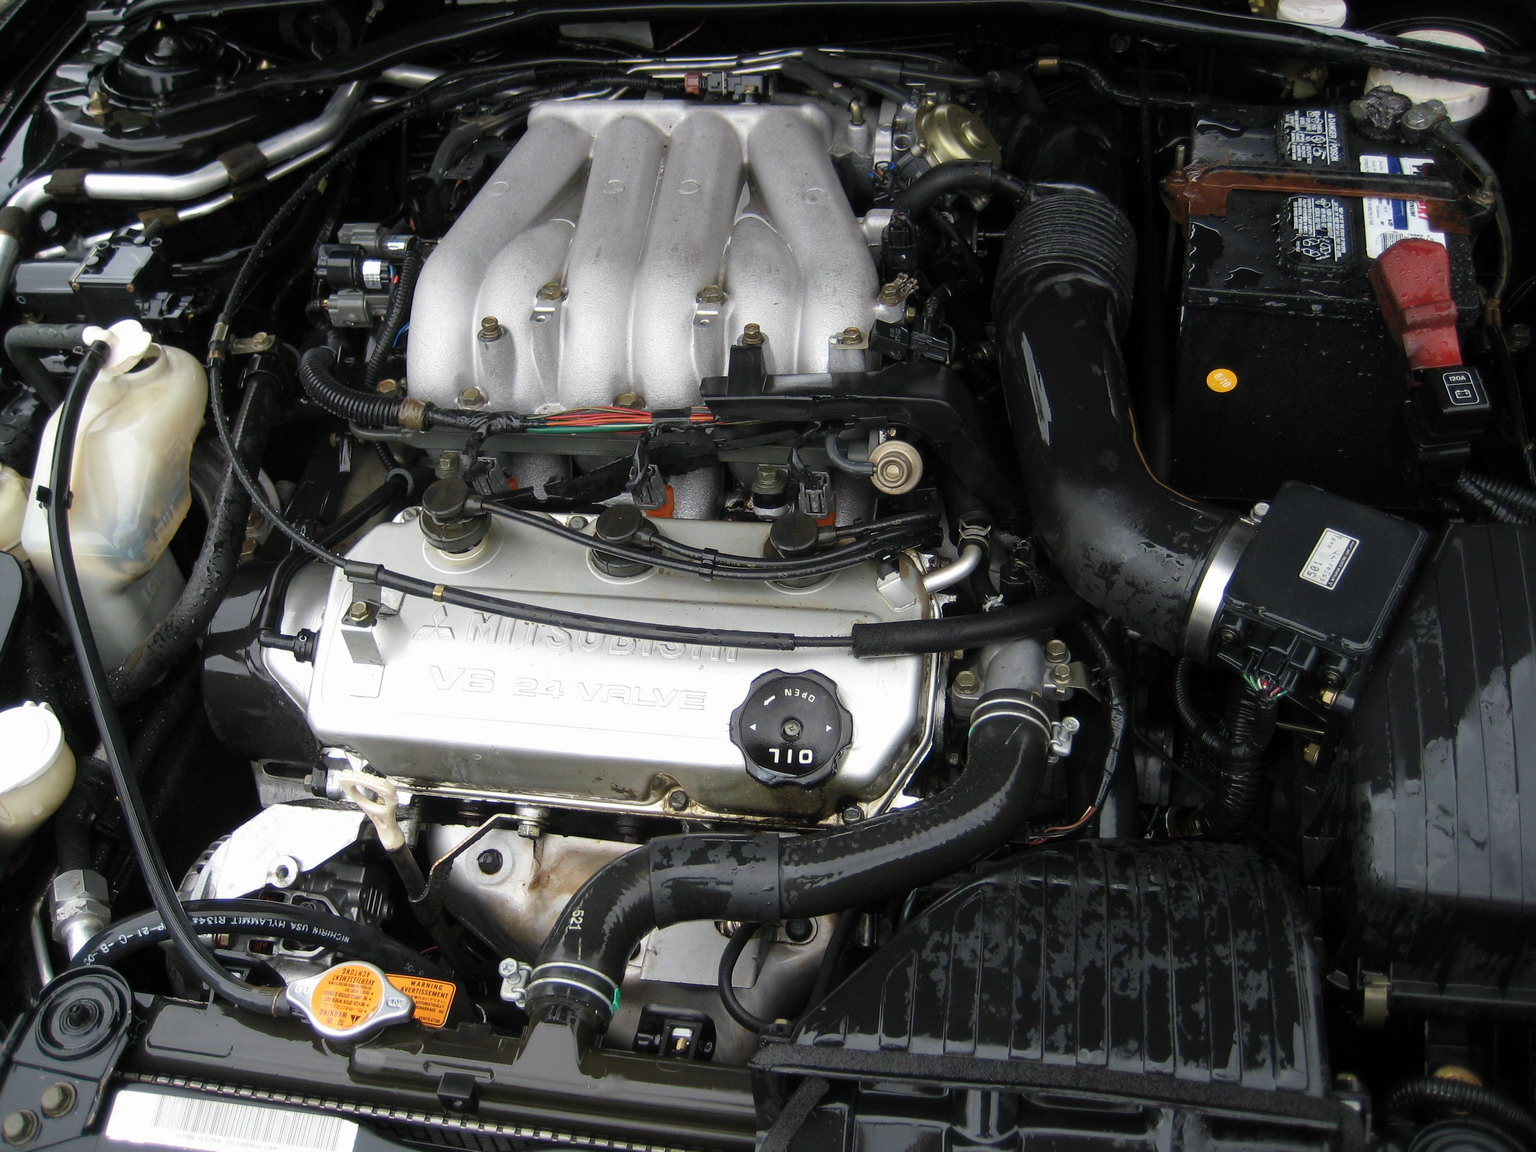 2001 Mitsubishi Eclipse Spyder - Other Pictures - CarGurus